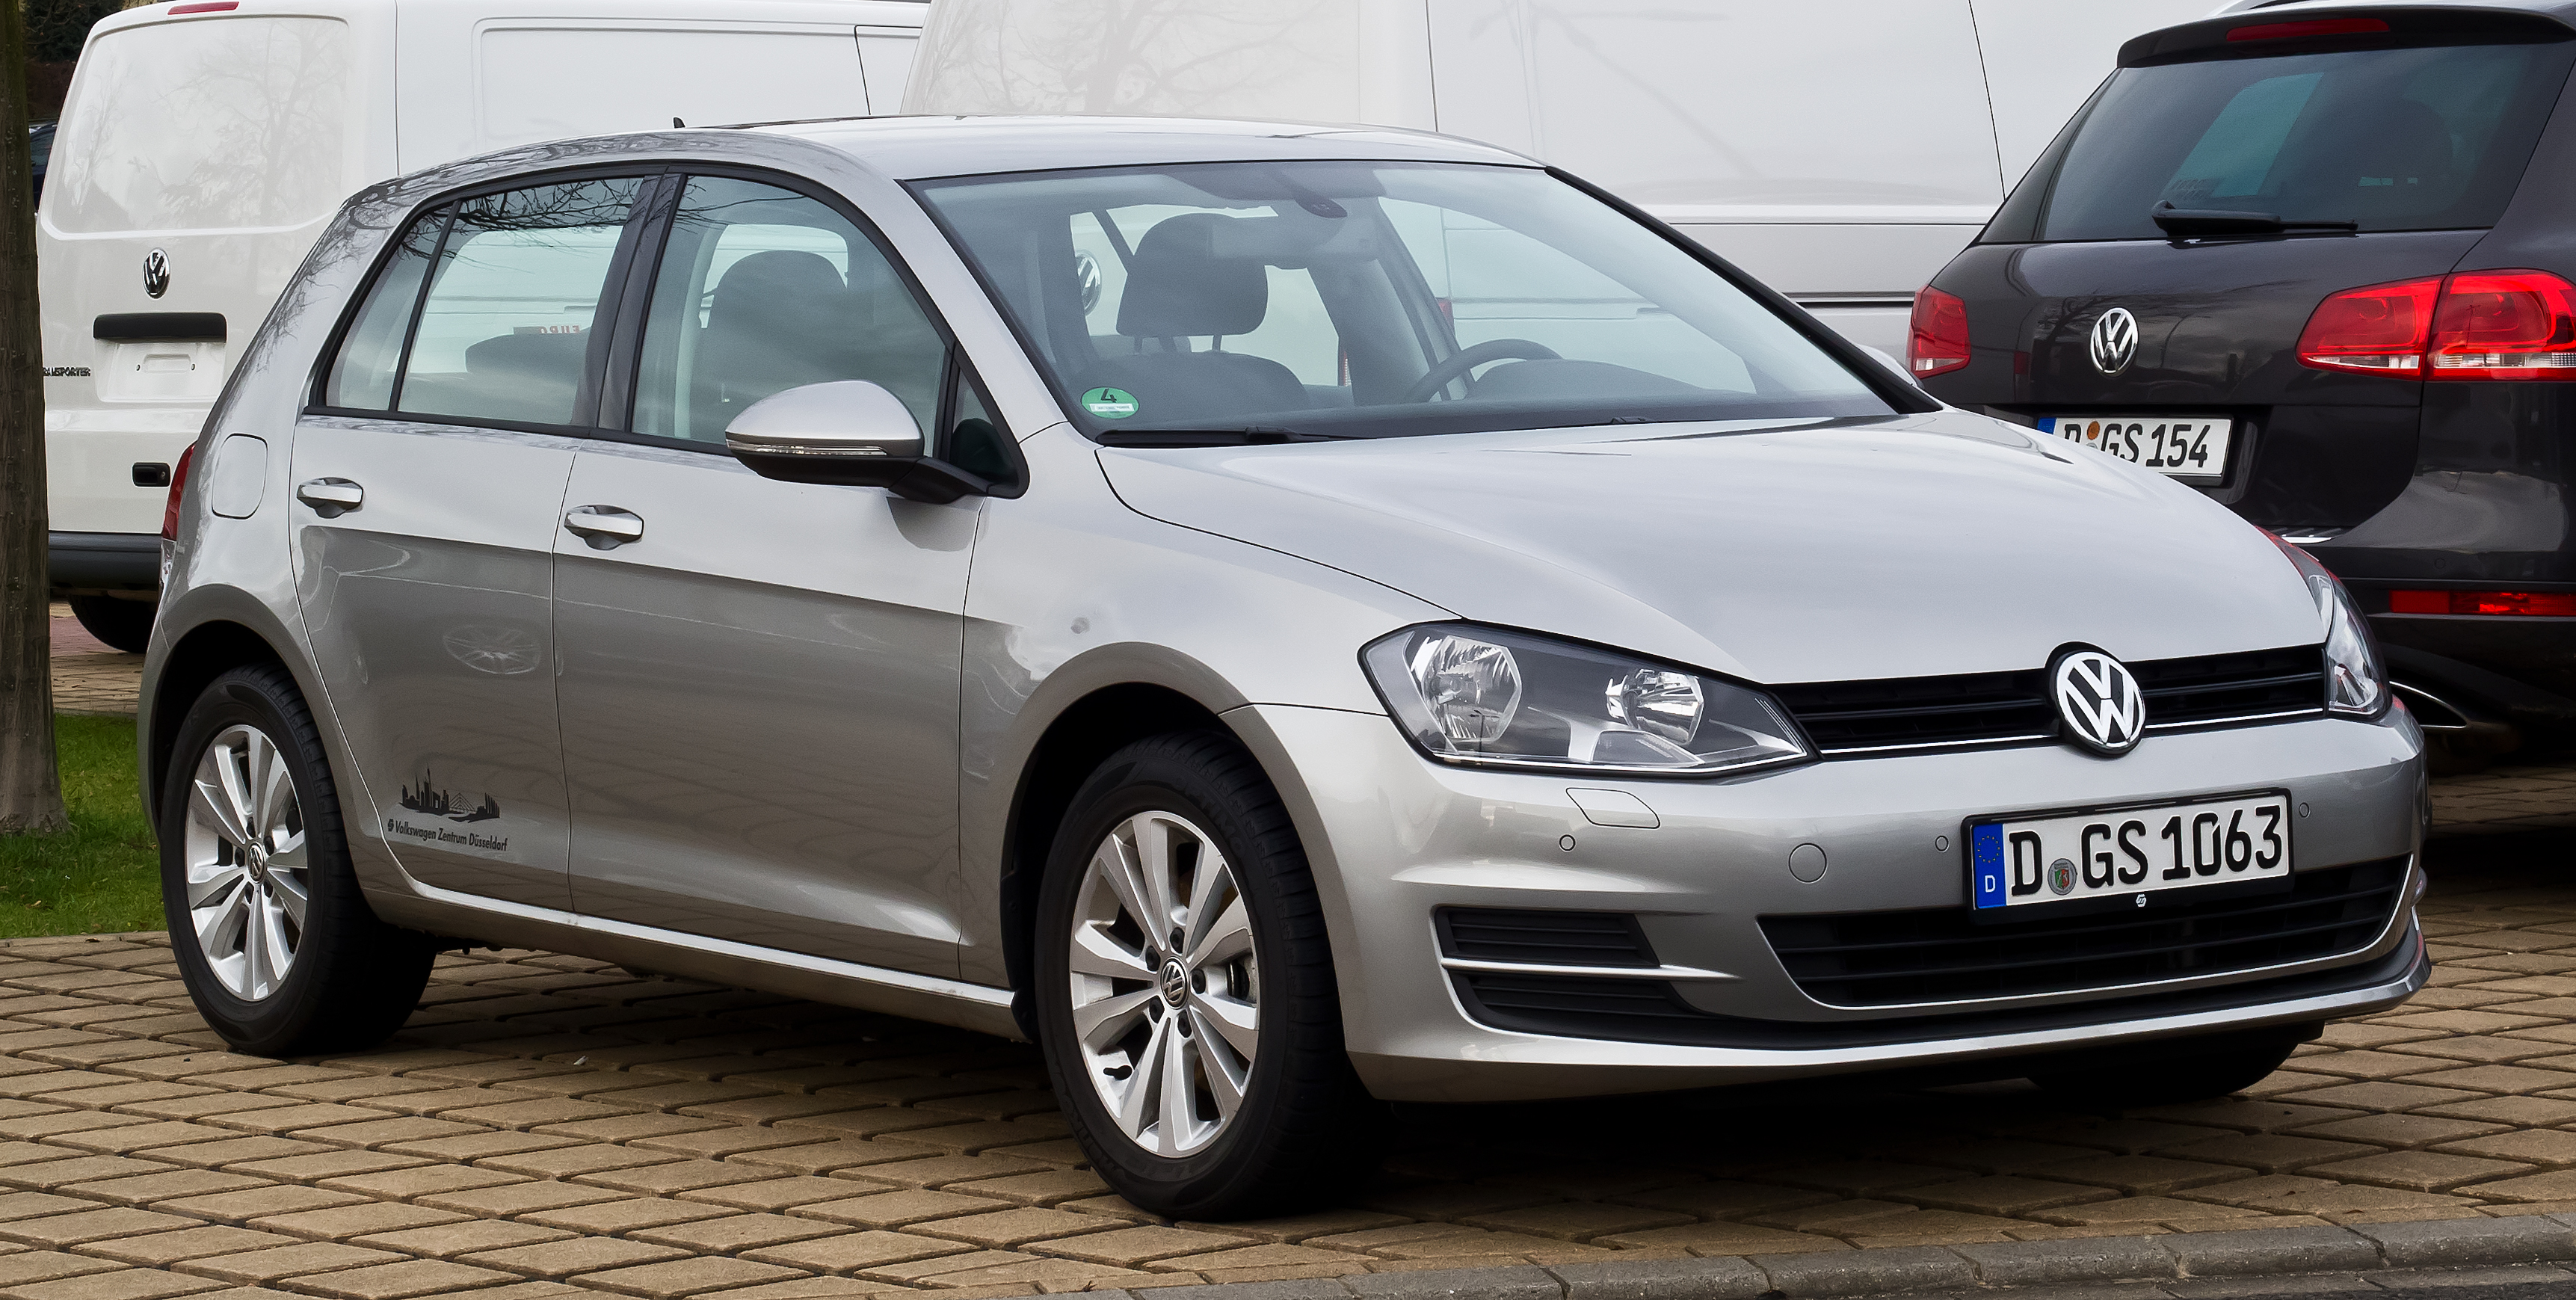 Description VW Golf 1.6 TDI BlueMotion Technology Comfortline (VII